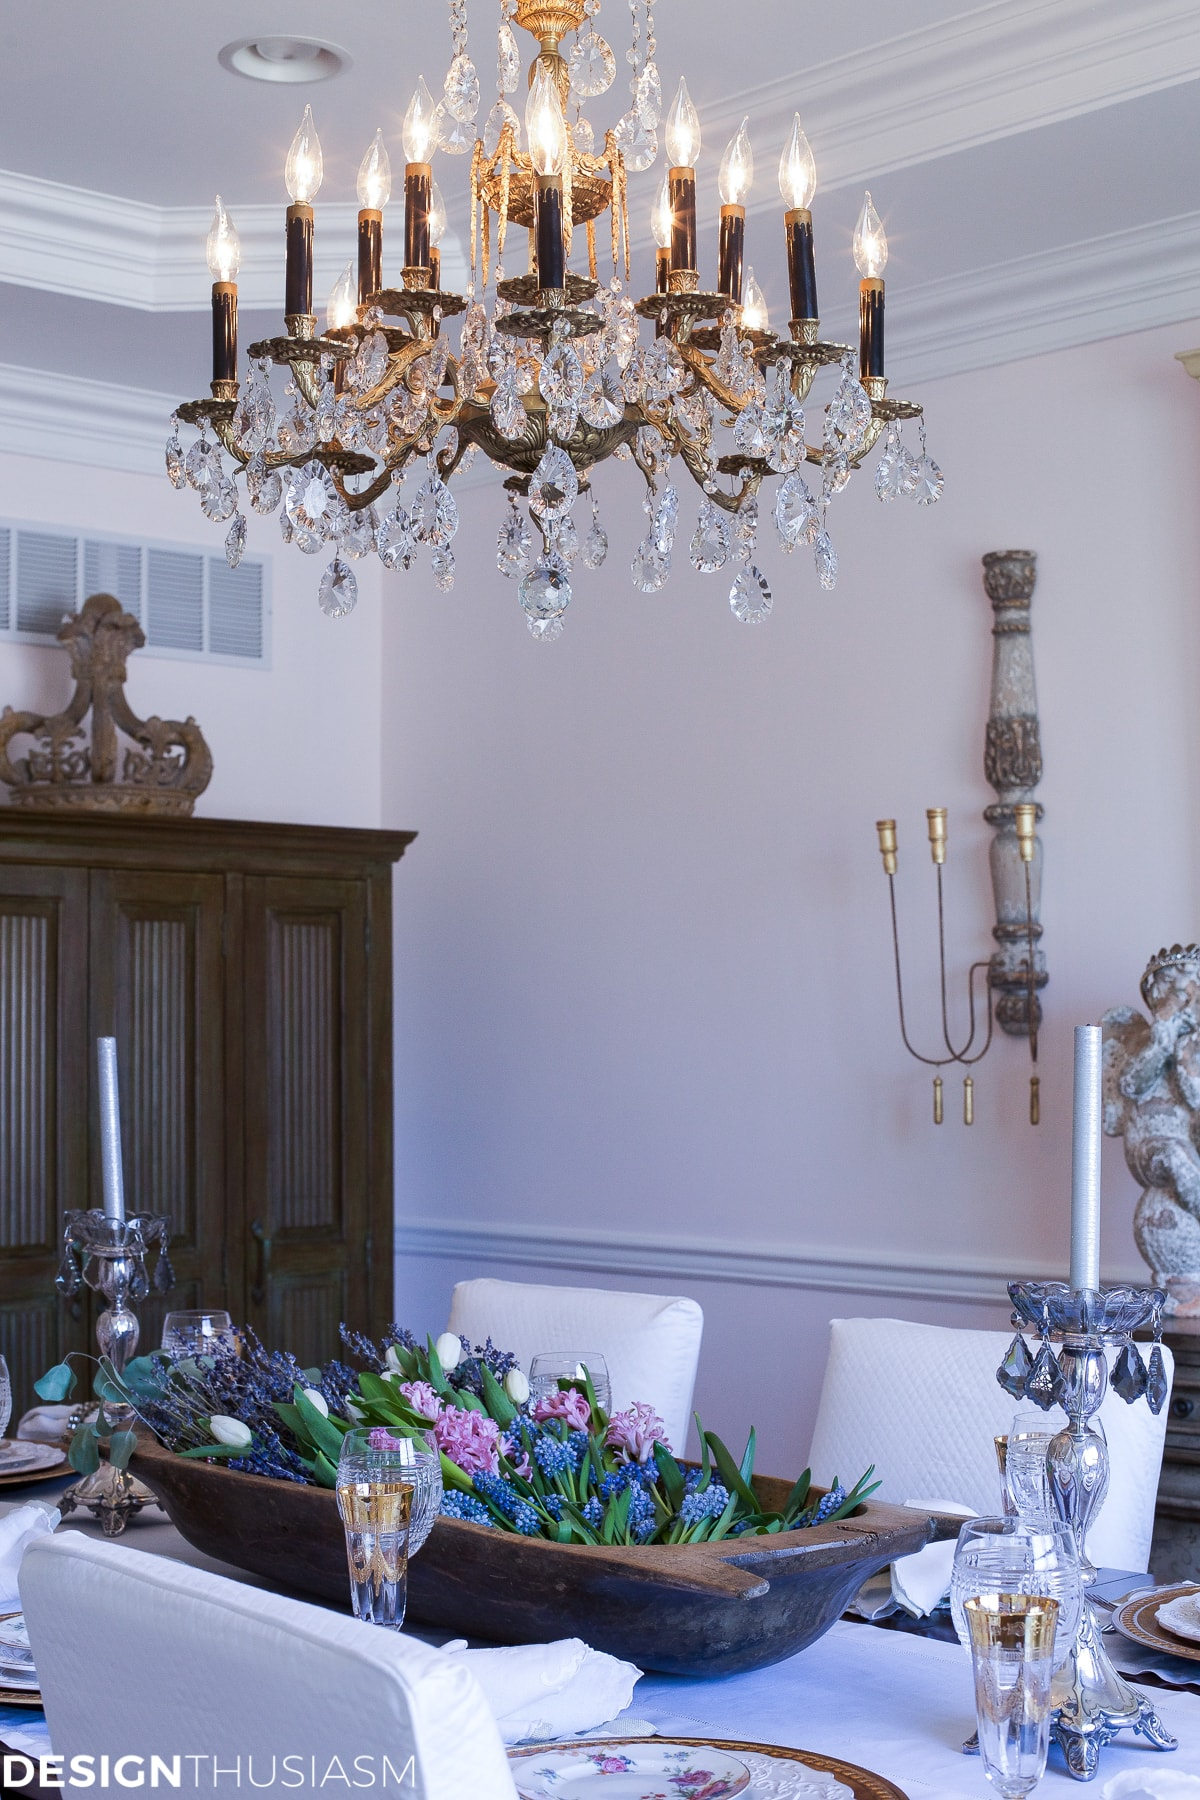 Setting a Dining Table to Reflect Your French Country Style - designthusiasm.com